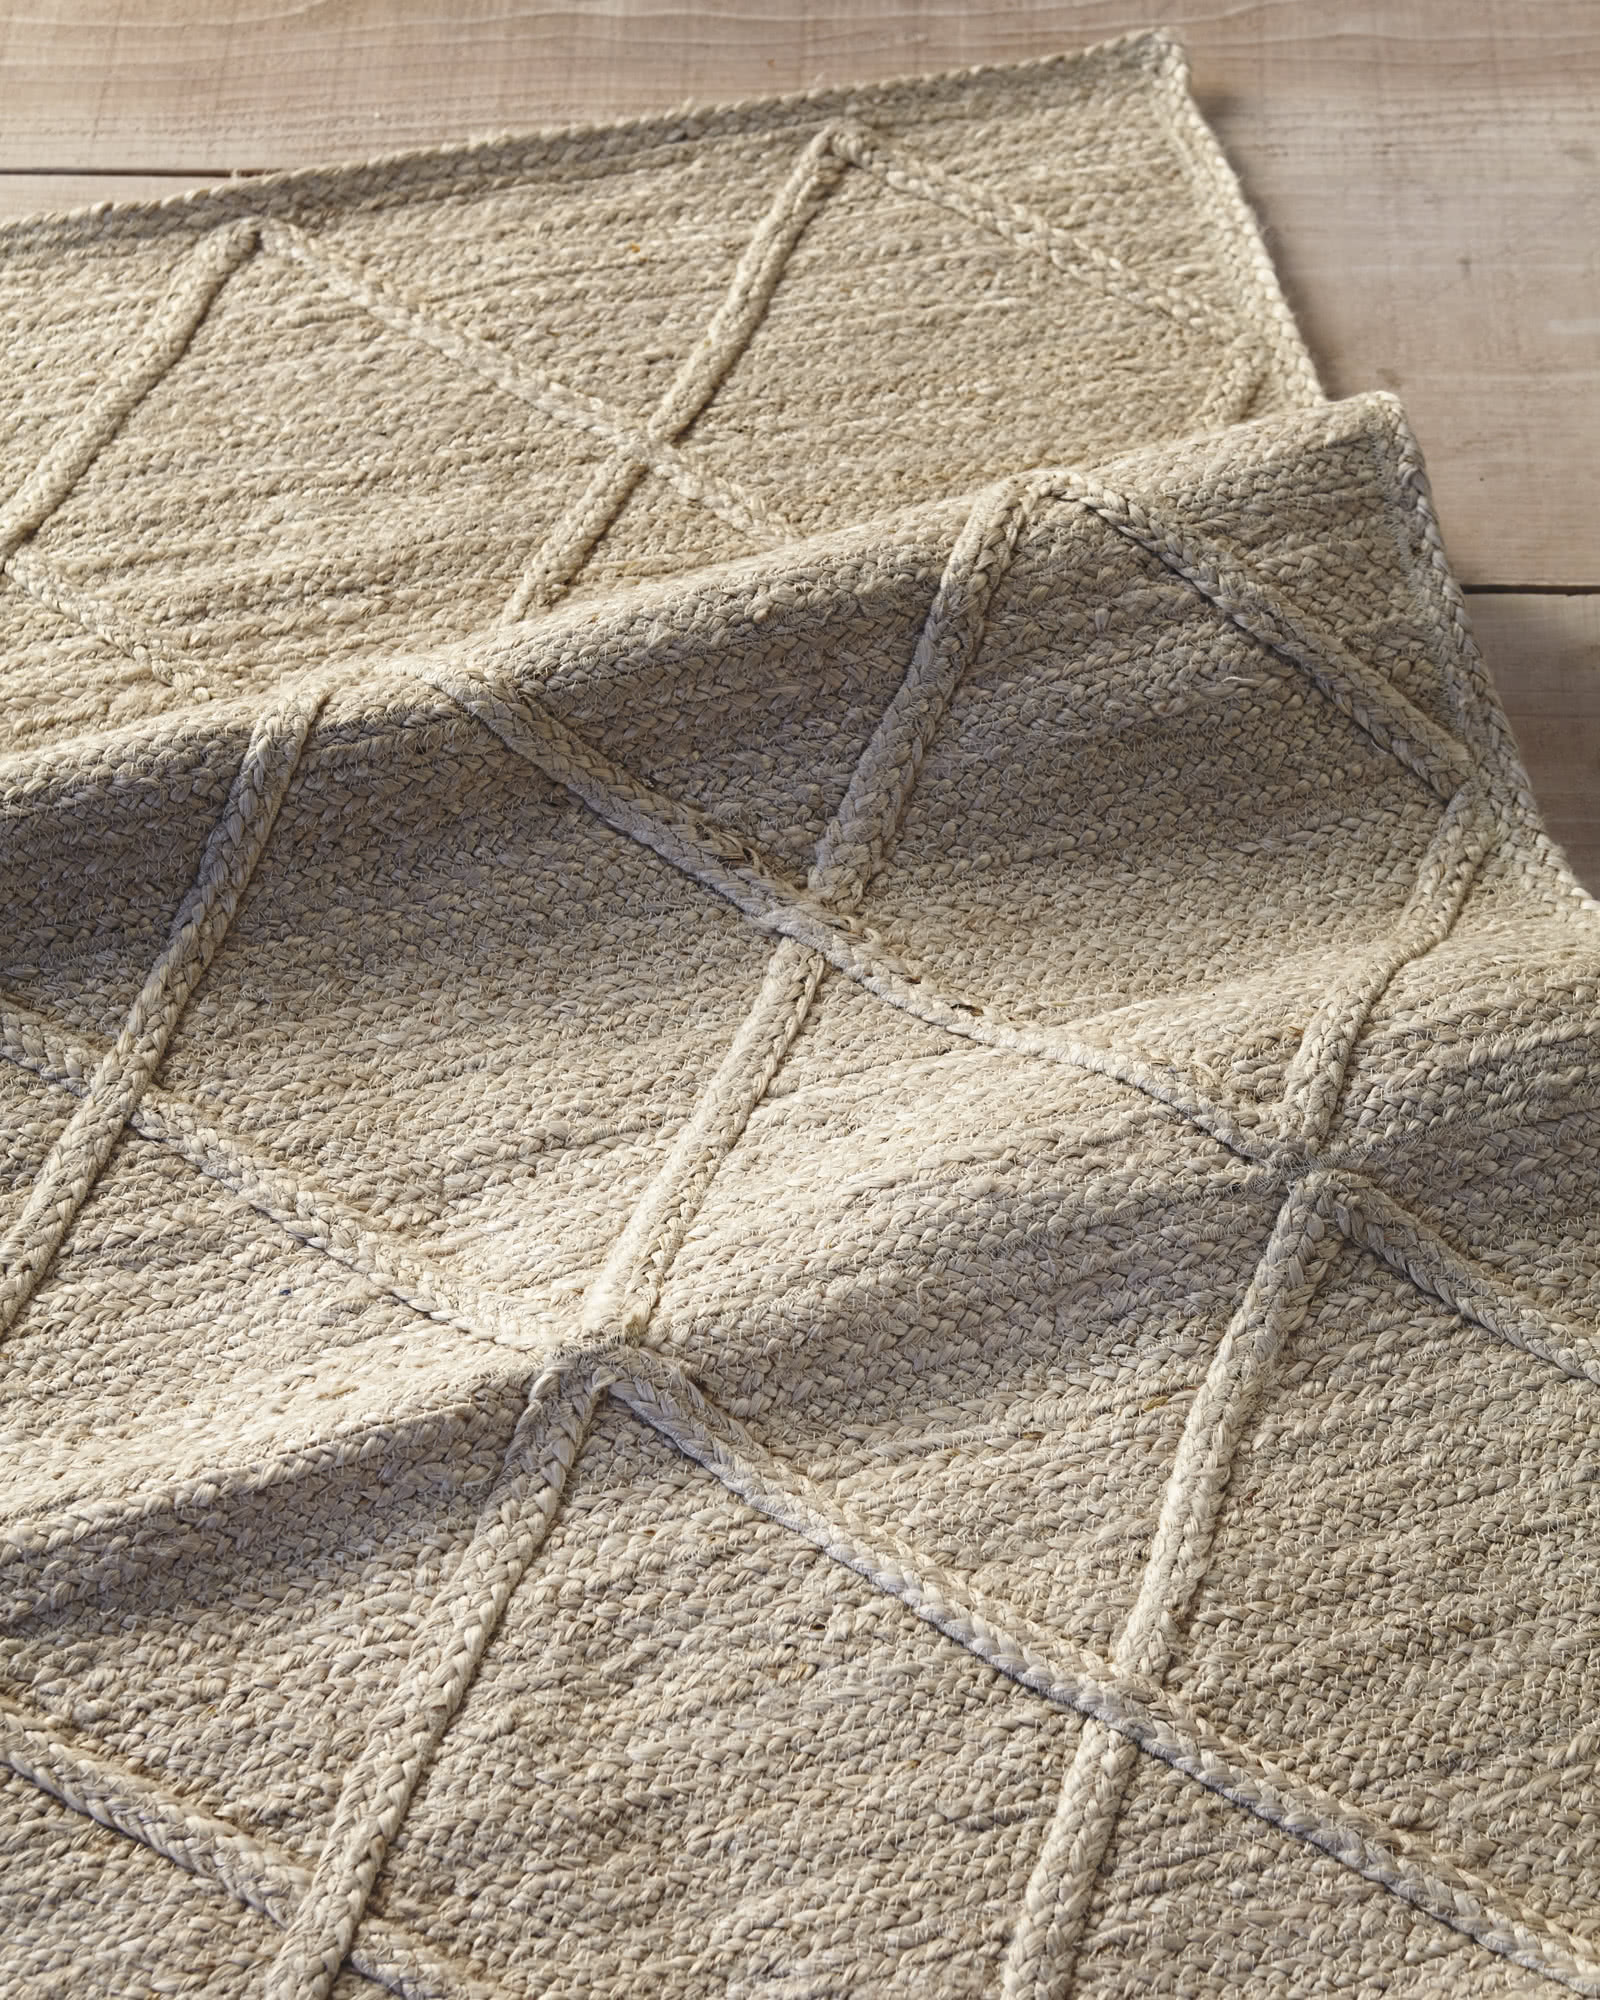 Delightful Diamond Jute Rug